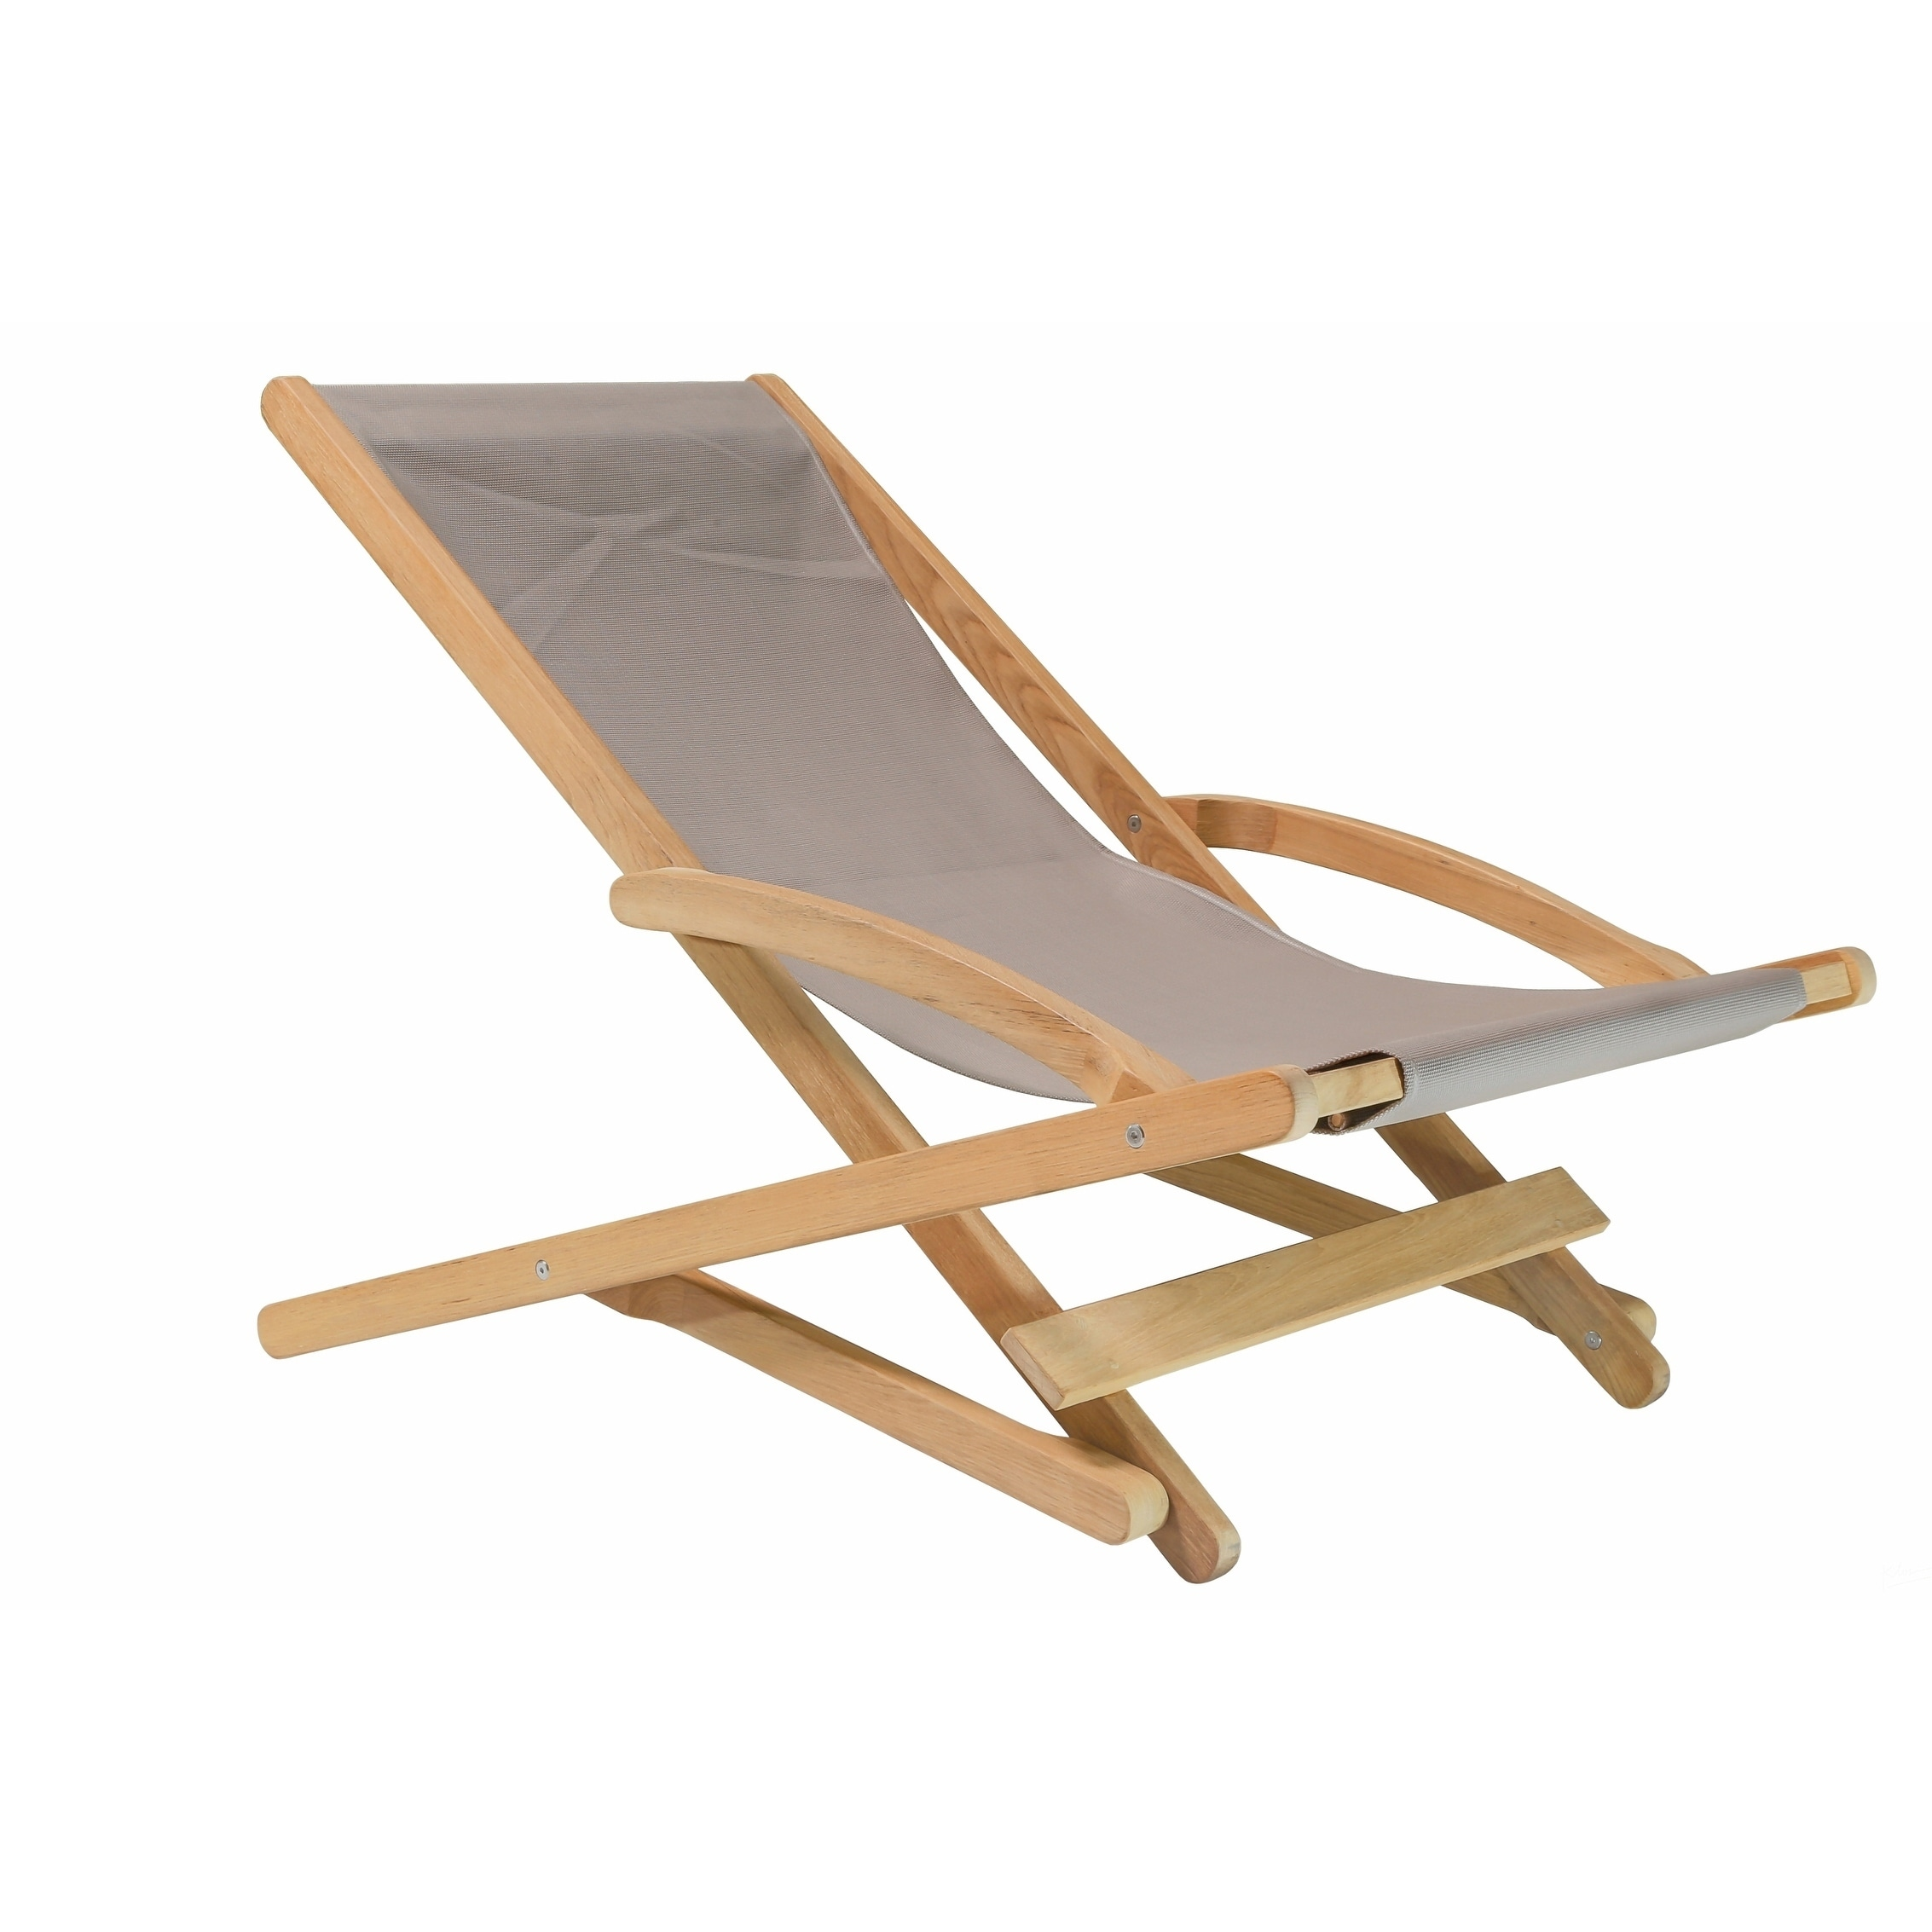 Teak Chaise Lounge Chairs Stella Outdoor Teak Folding Lounge Chair